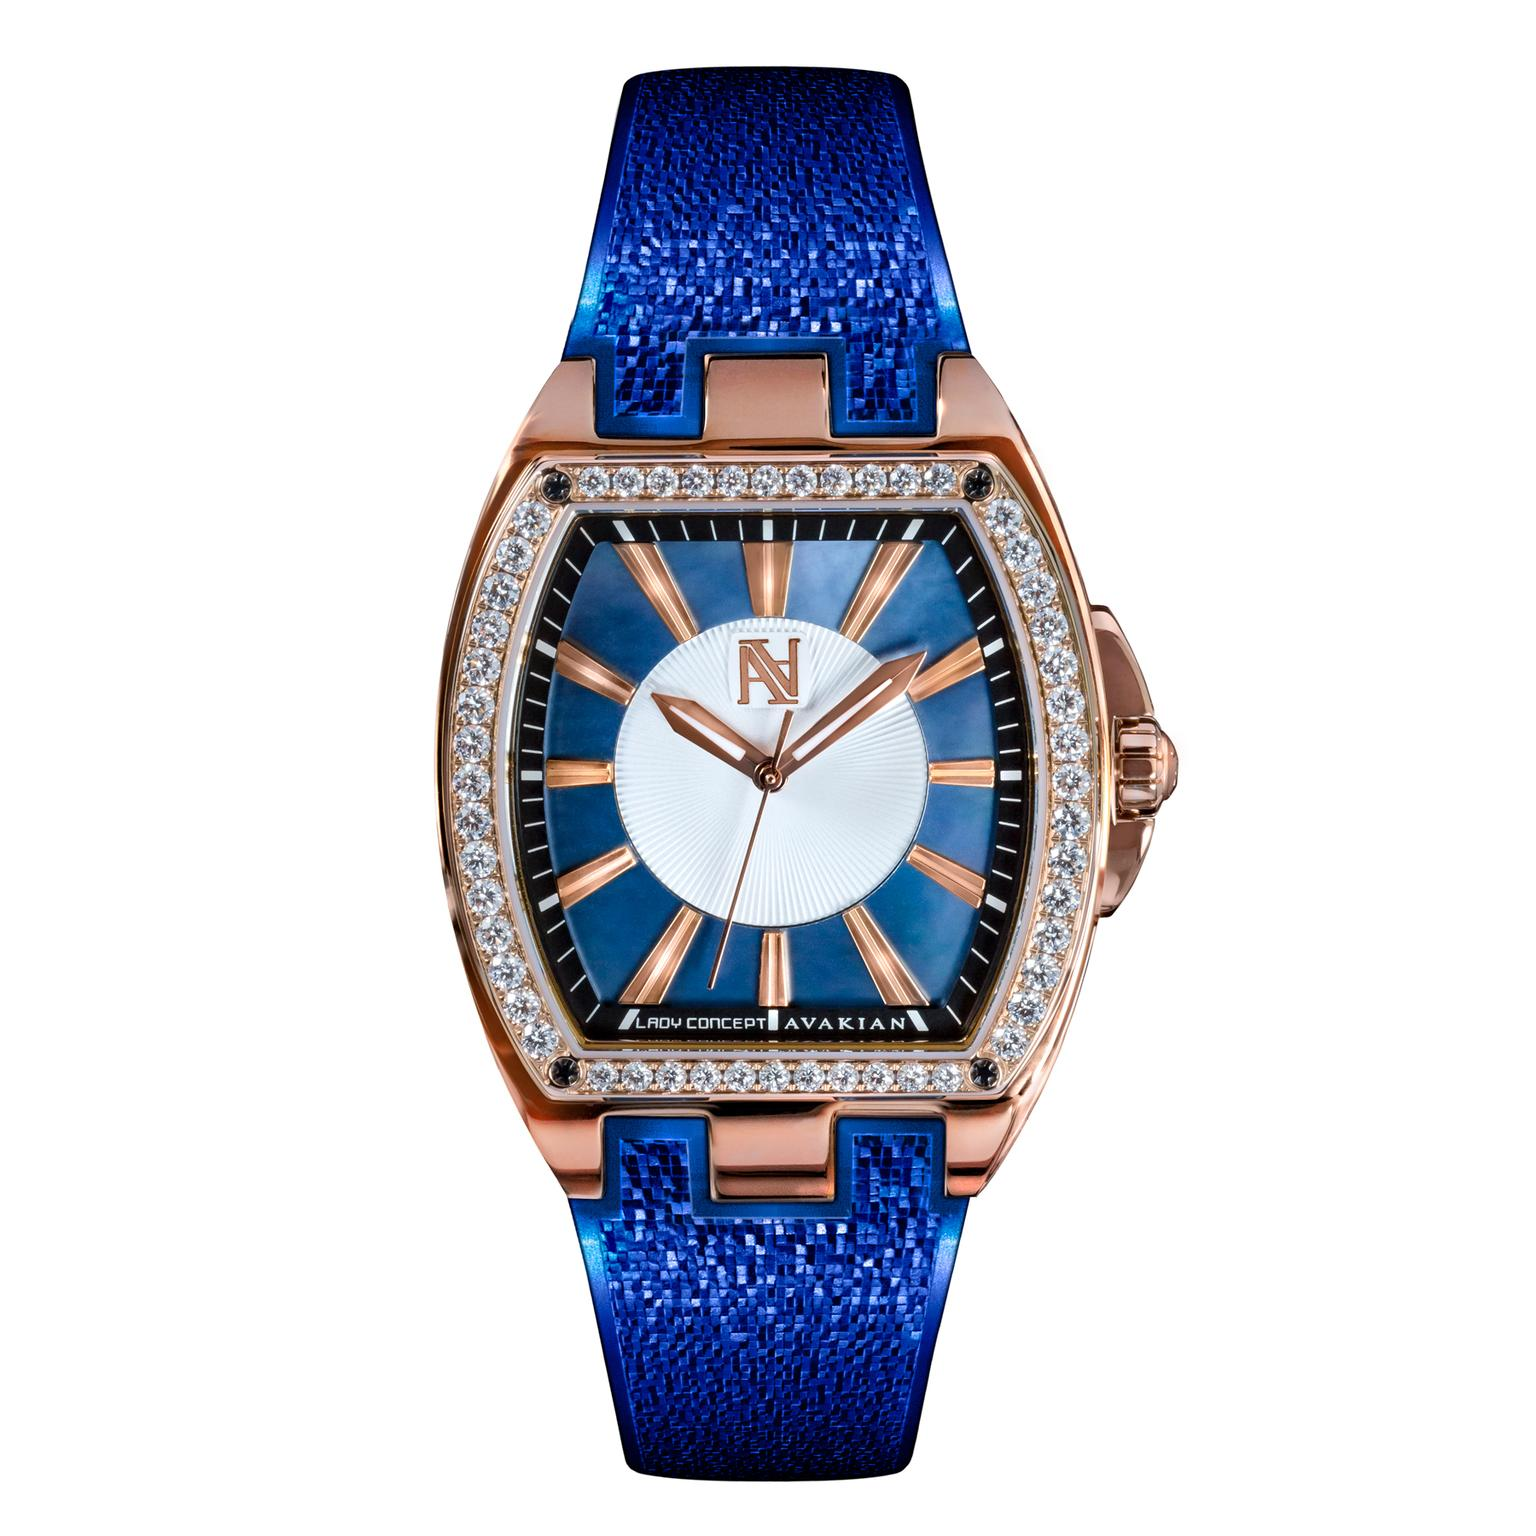 Avakian Lady Concept Blue watch